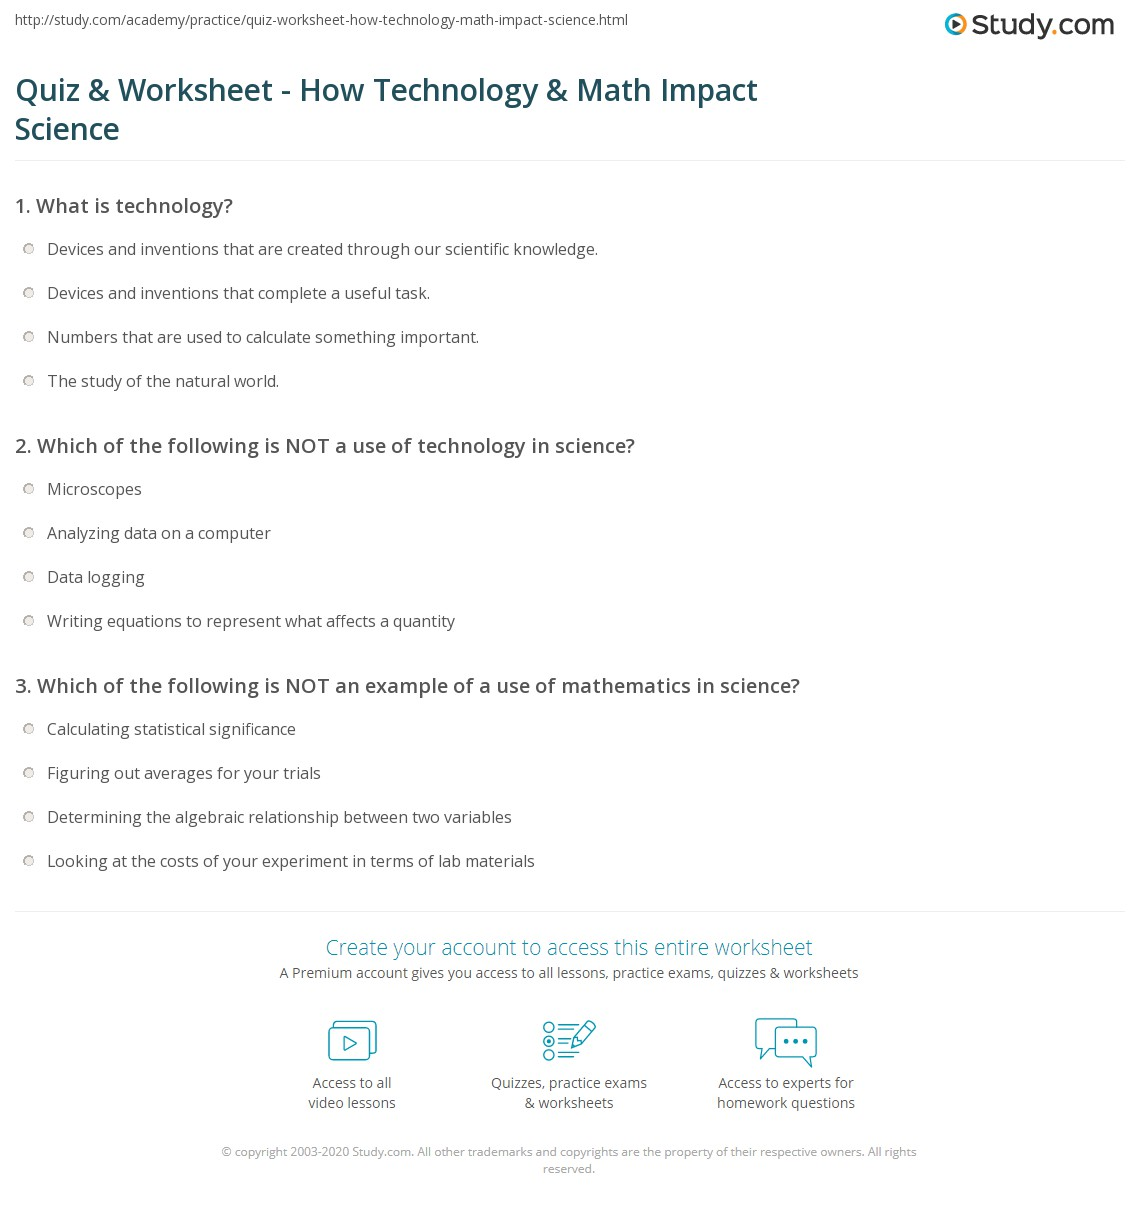 Quiz & Worksheet - How Technology & Math Impact Science